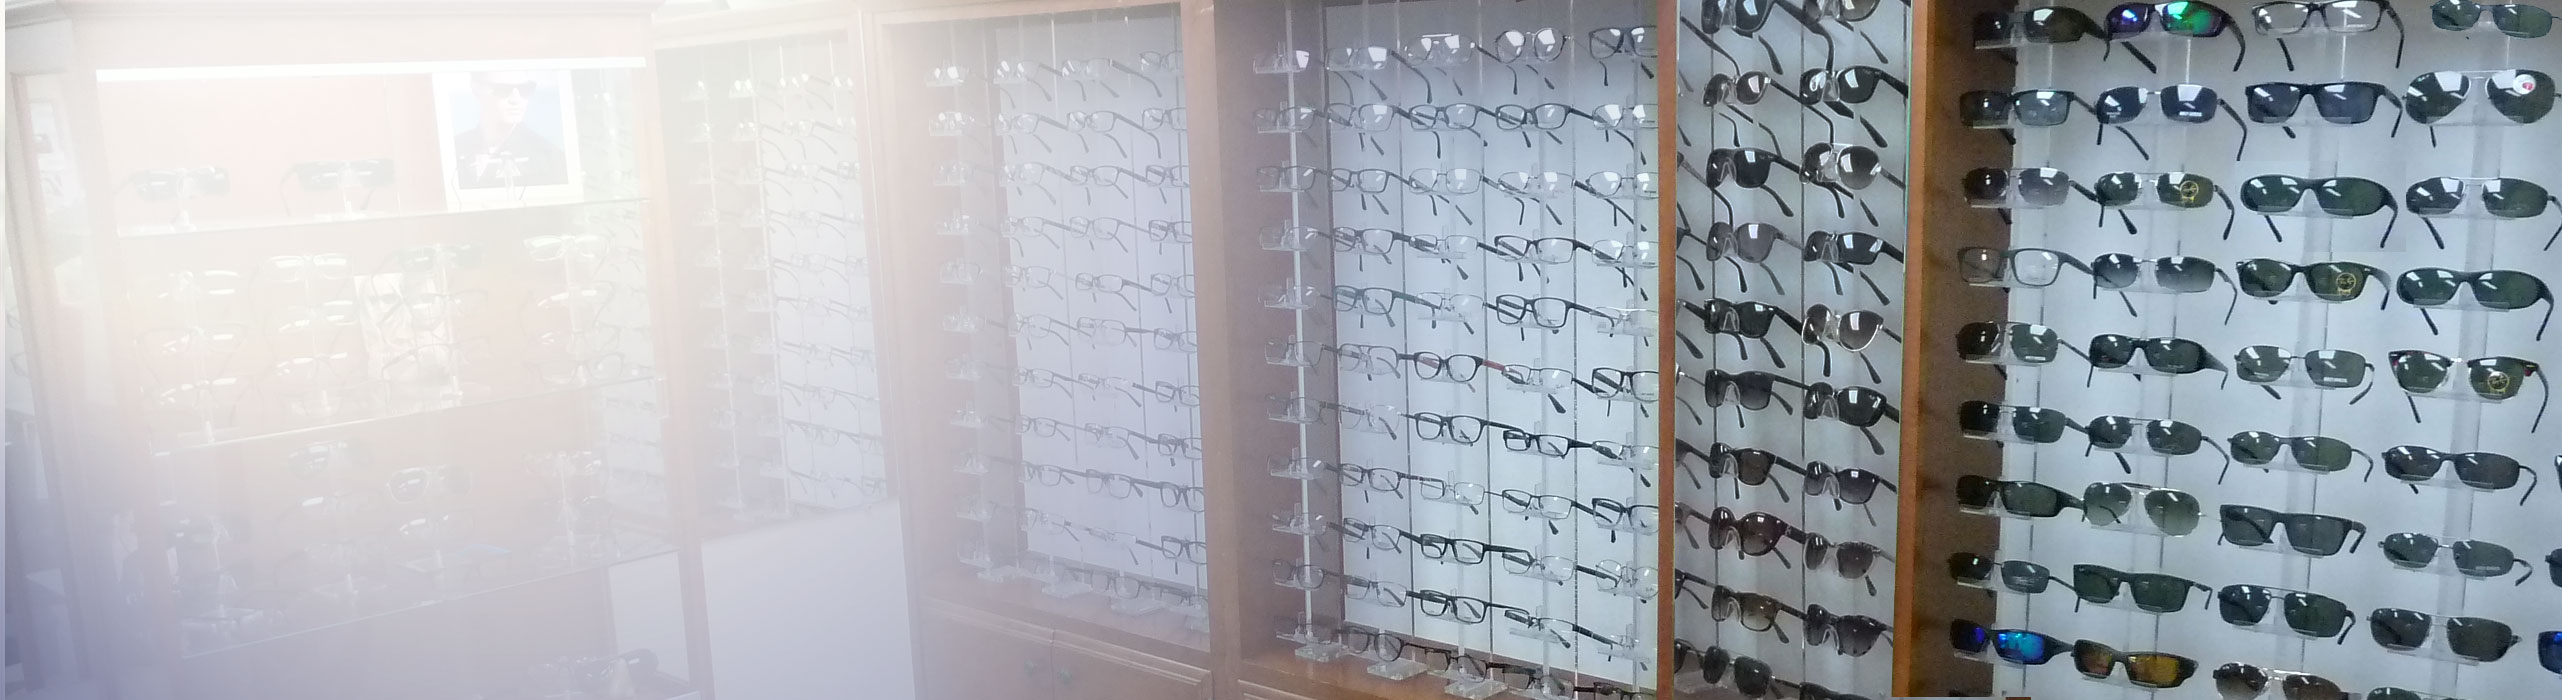 Snyder Optometry